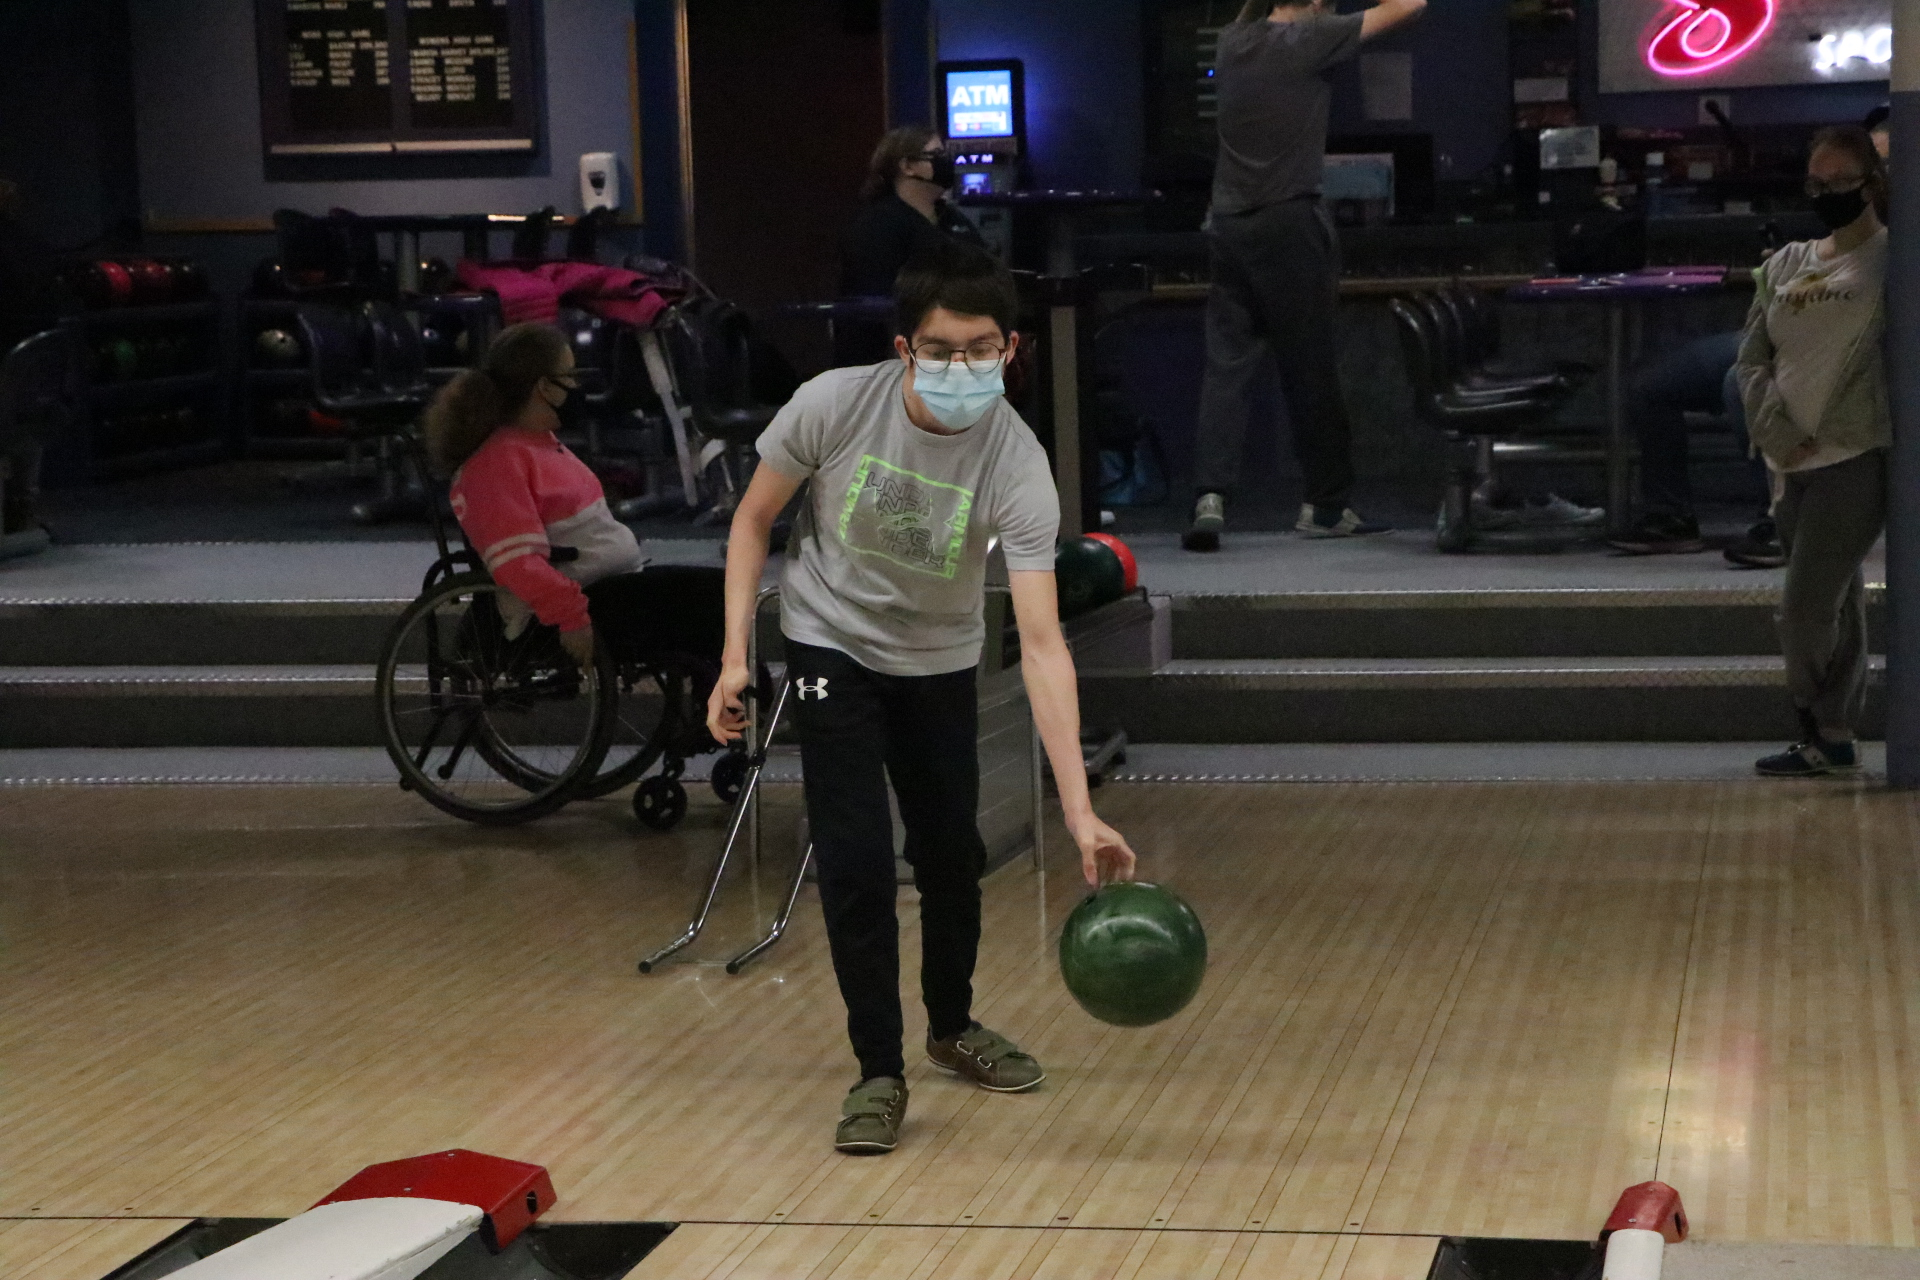 Michael Cadena competes for the Ralston unified bowling team. (Pam Castaneda-Martinez)